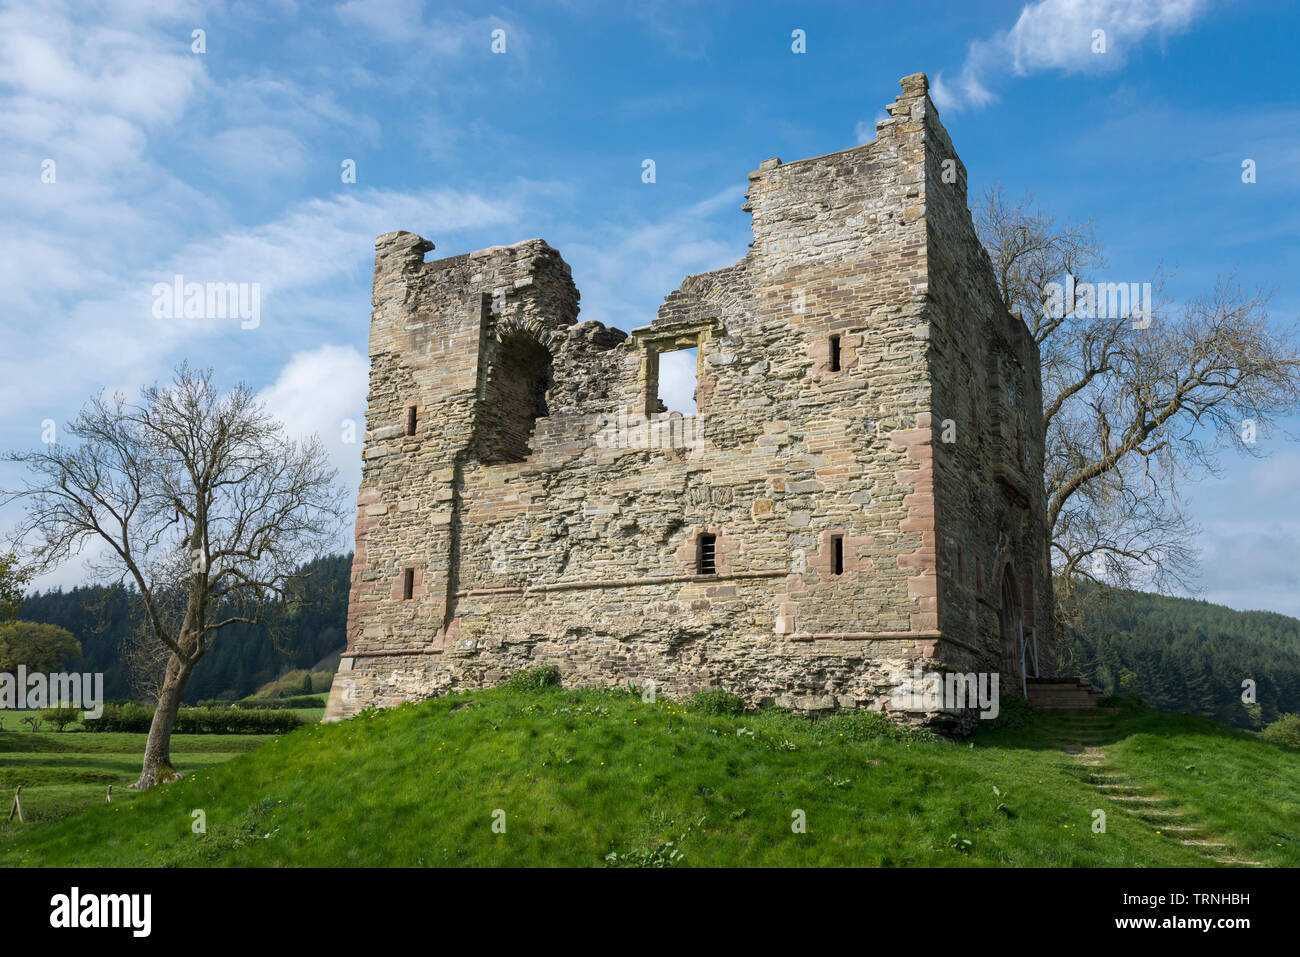 Hopton Castle, Shropshire, England. Restored as a historic visitor attraction in the Shropshire hills. - Stock Image